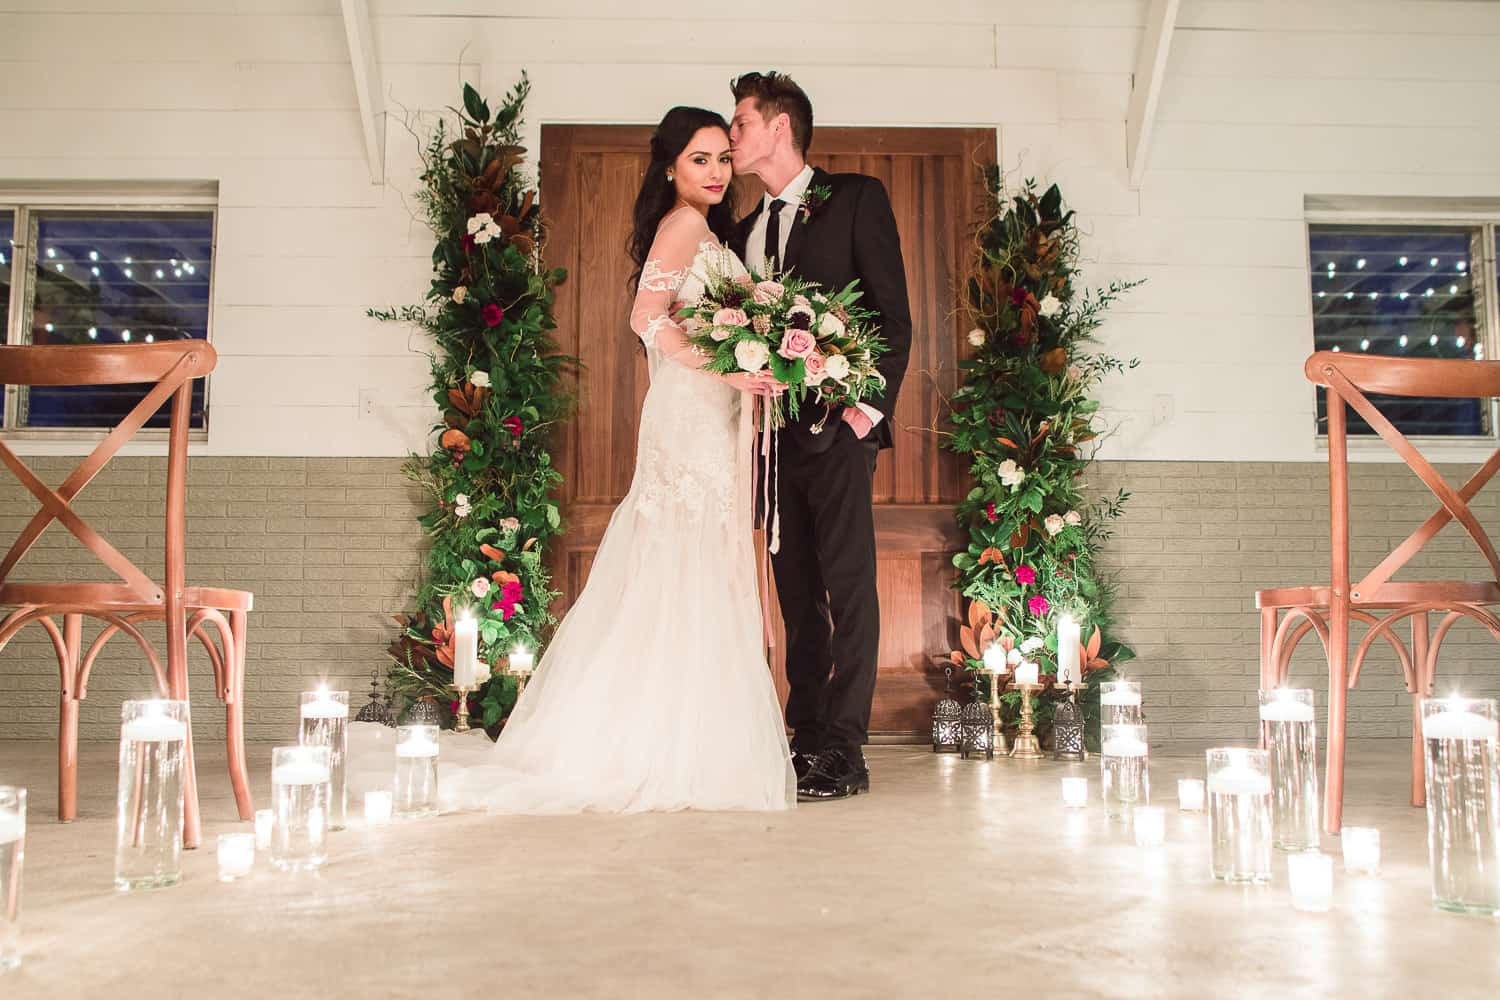 Indoor candlelit wedding ceremony in the winter at Cedar Valley Forest